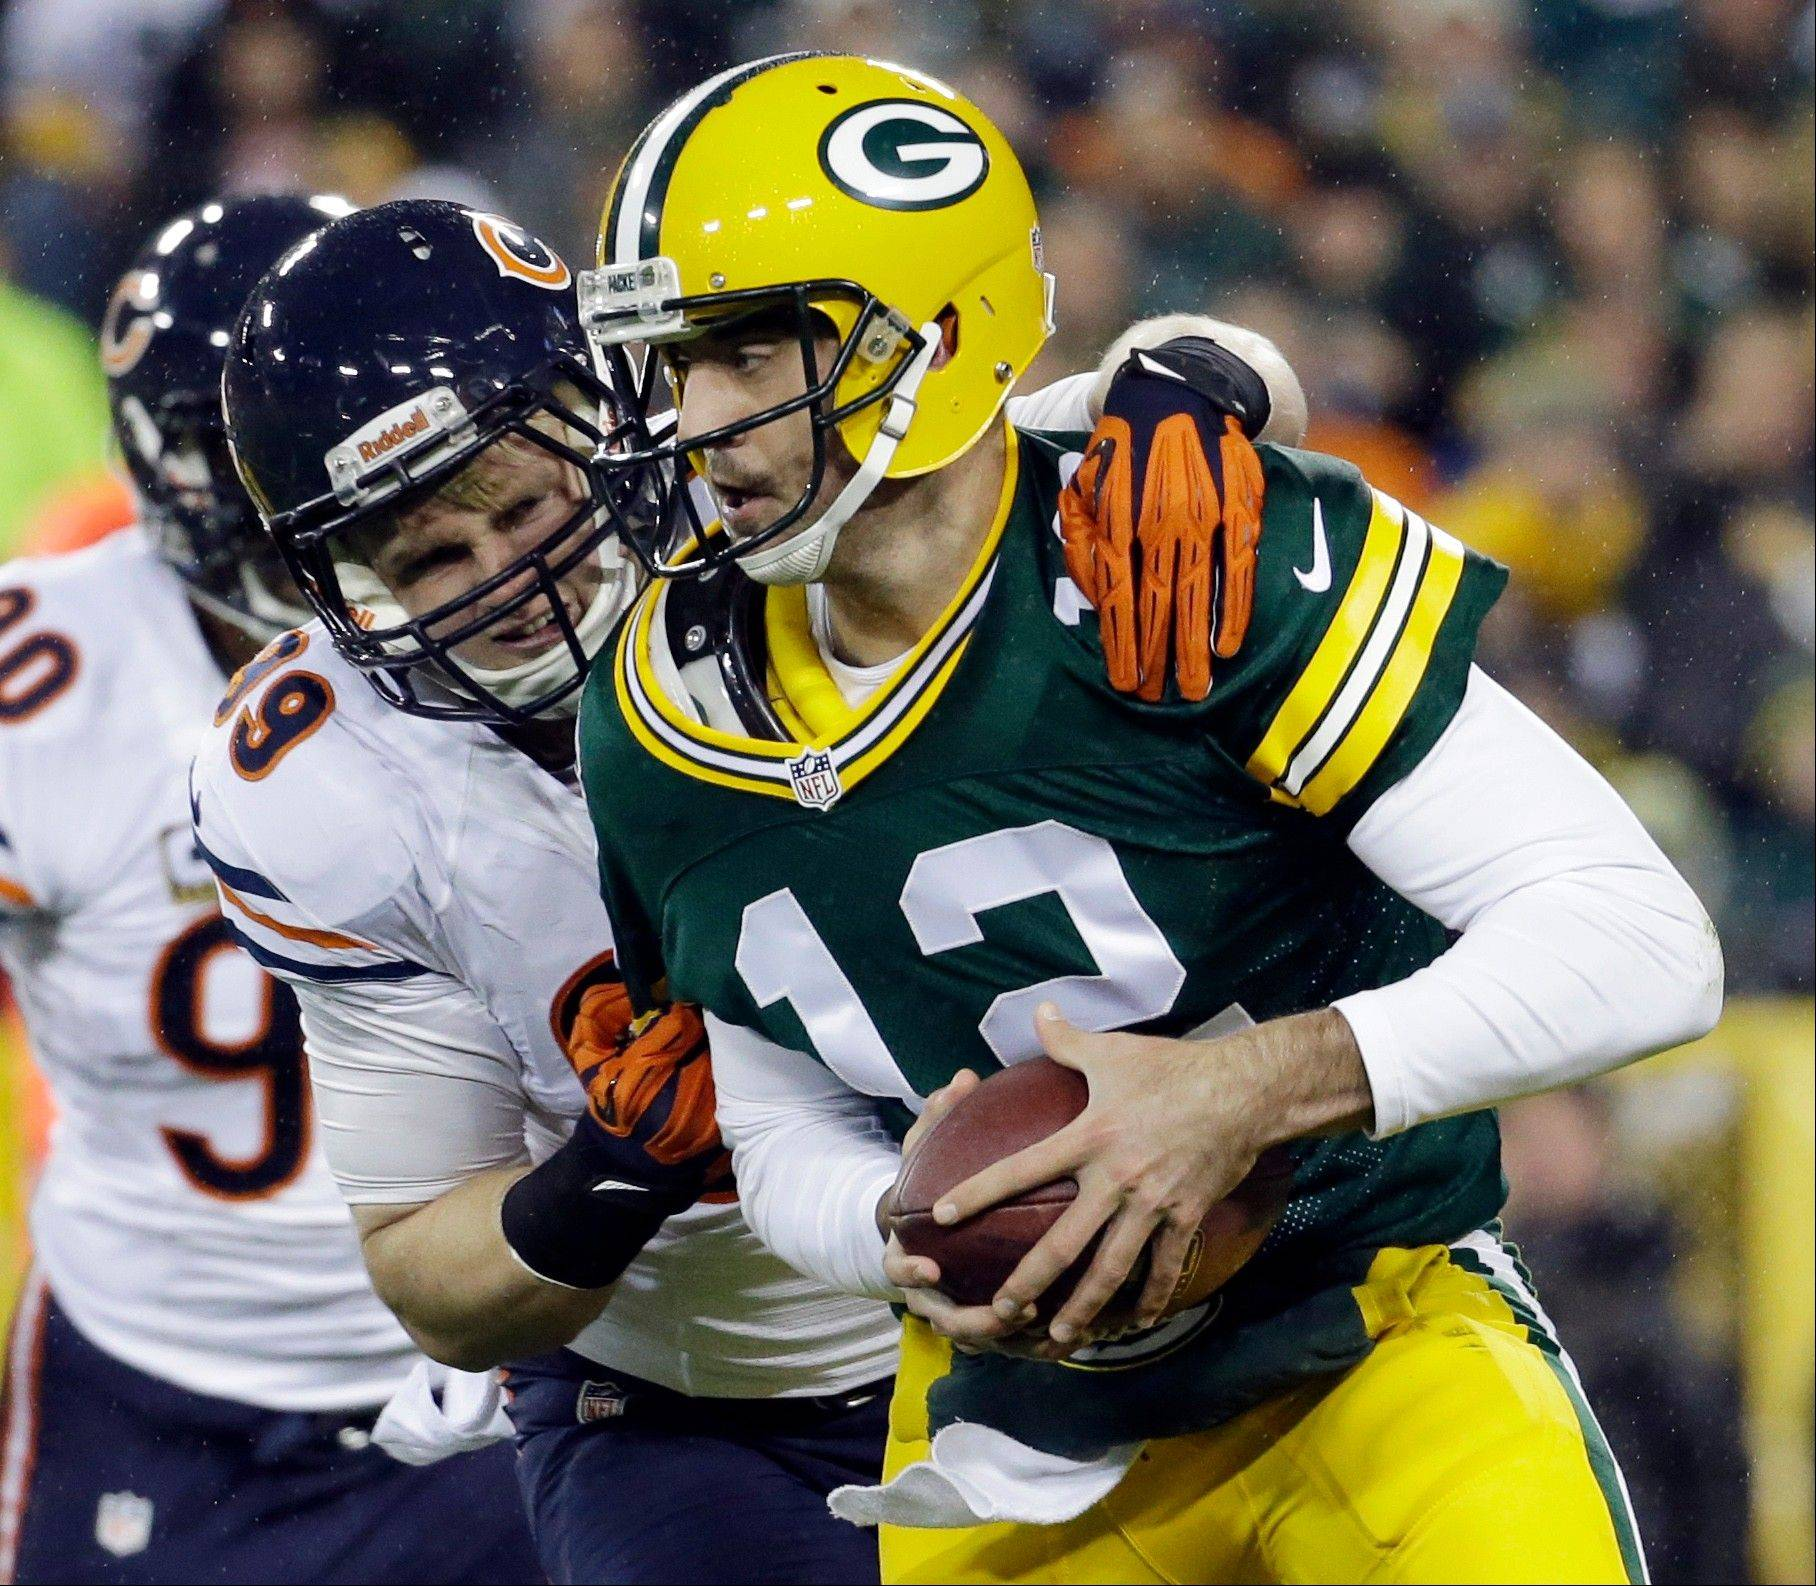 Green Bay Packers quarterback Aaron Rodgers is sacked by Chicago Bears' Shea McClellin during the first half .